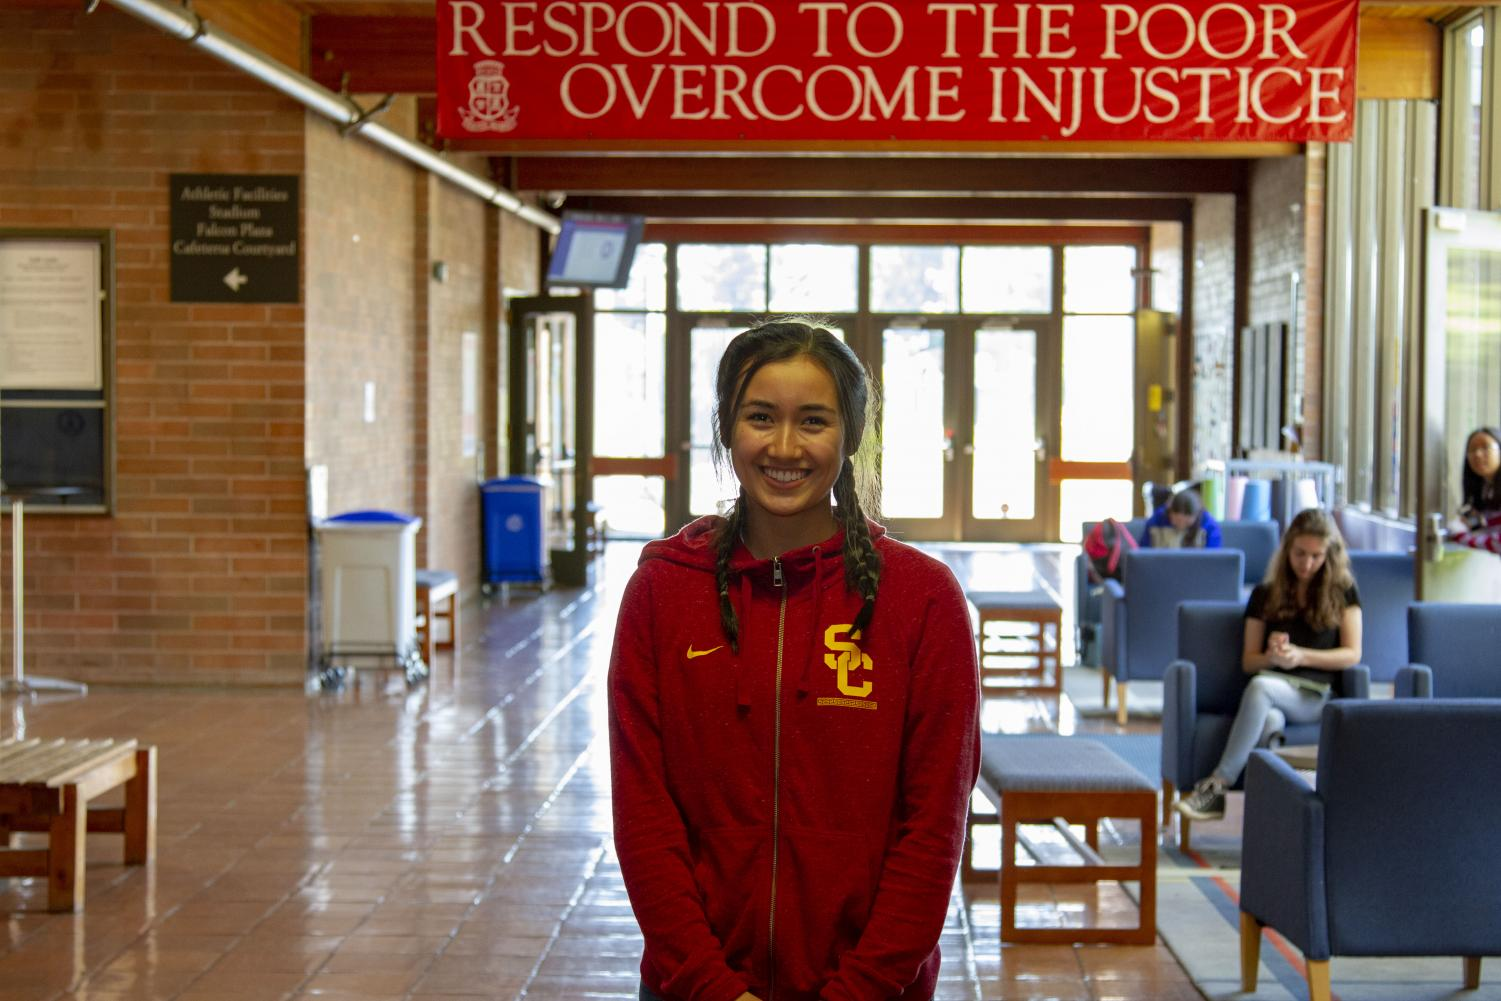 With 16 Division 1 offers to play basketball, Alyson Miura chose the University of Southern California.